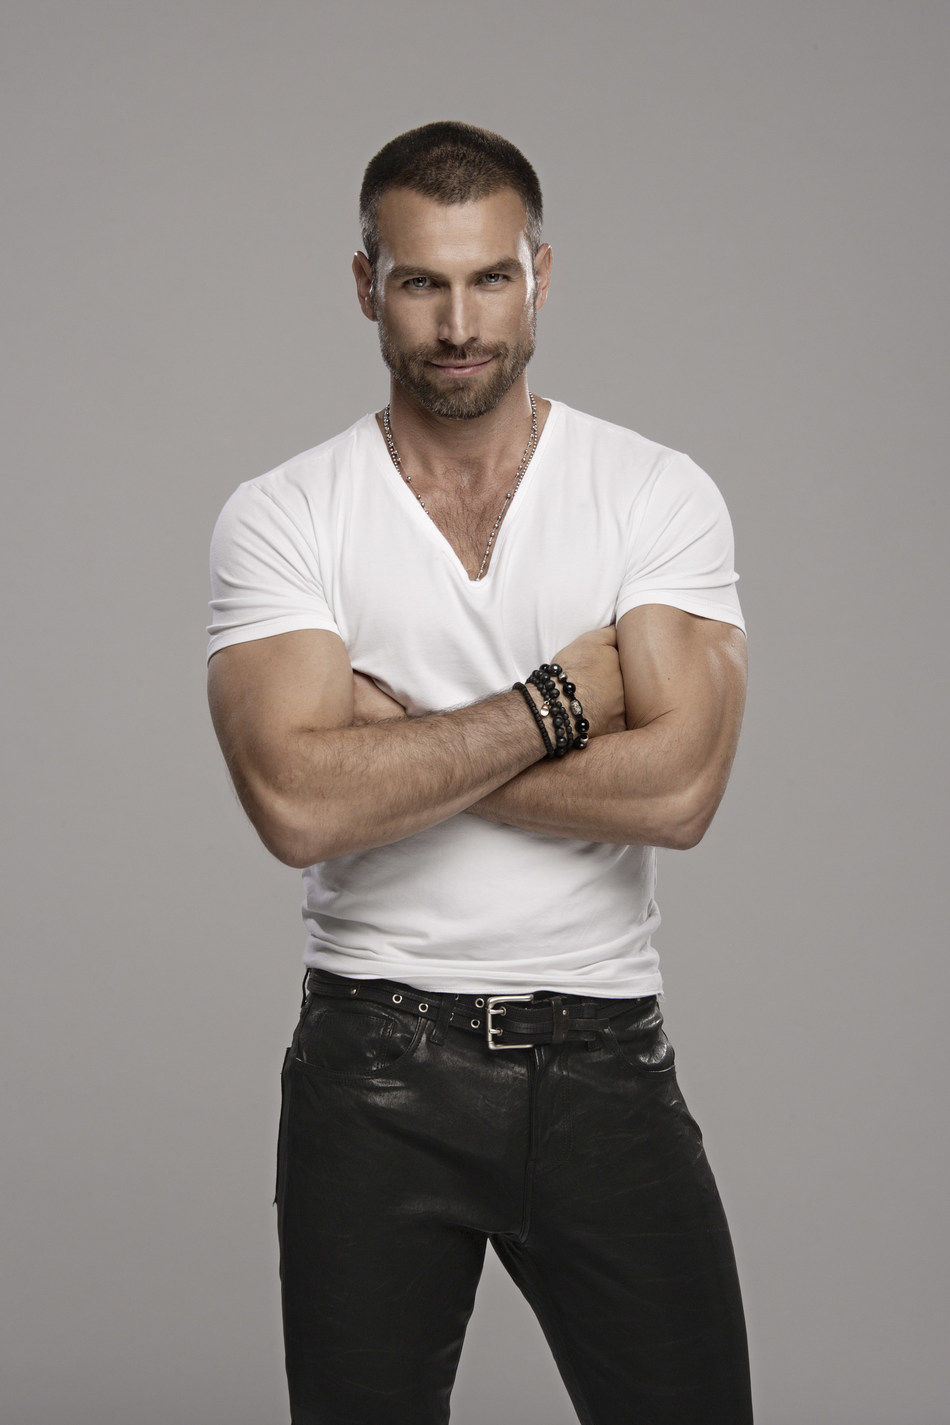 Rafael Amaya, Spanish-Language Leading Actor, To Be Honored During 15th Annual Hispanic Television Summit (PRNewsfoto/Broadcasting & Cable and Multic)